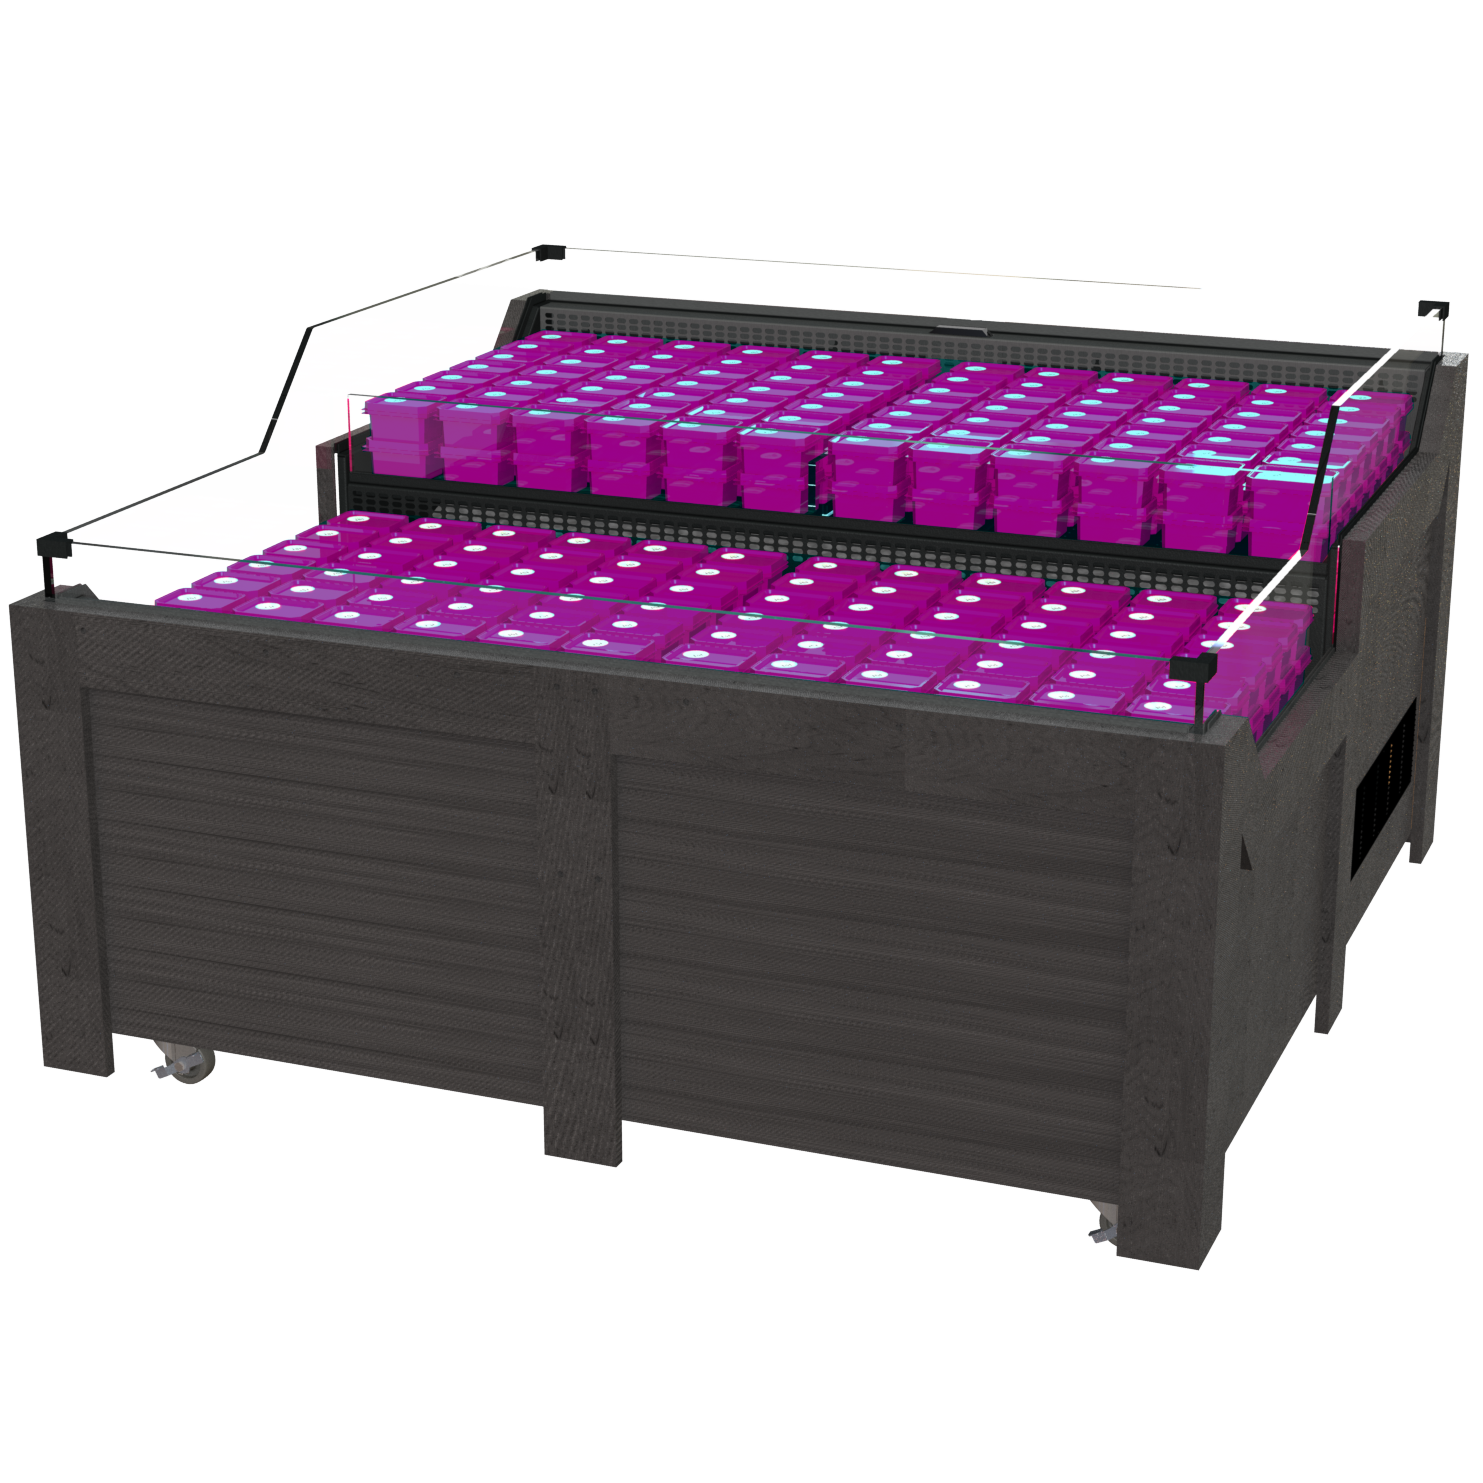 2-Tier High-Visibility Refrigerated Cases (5′-6'W)